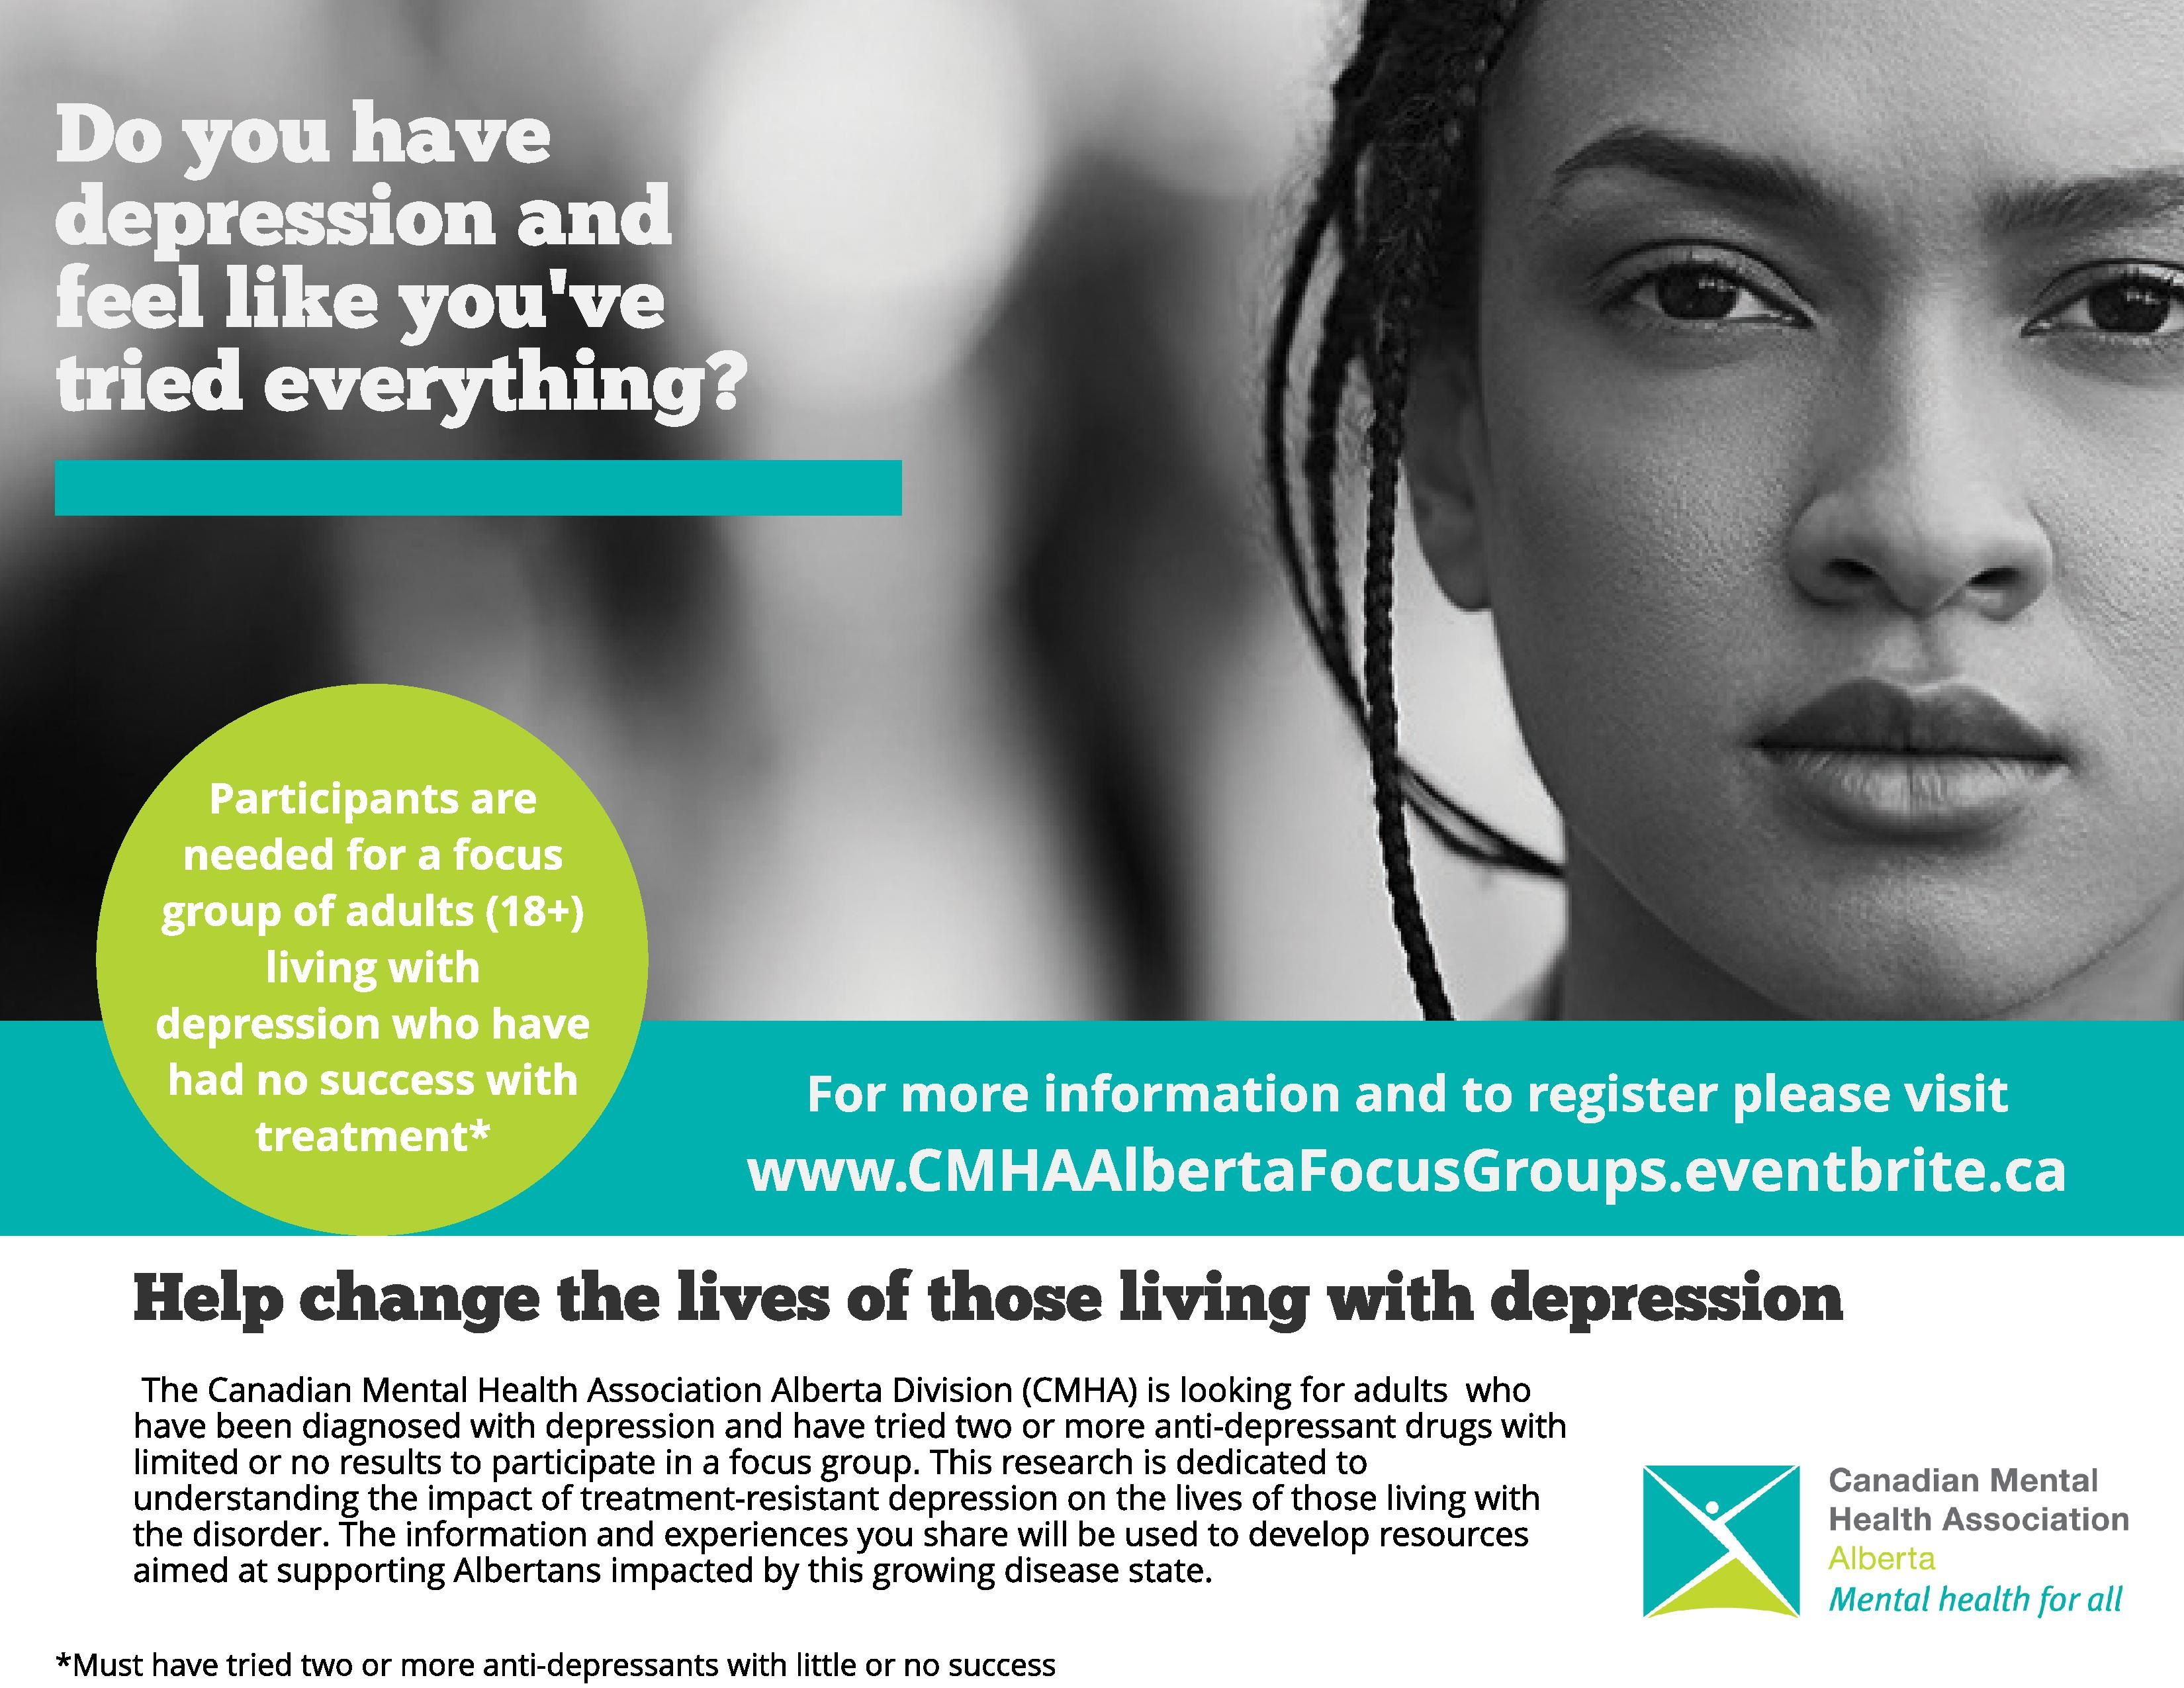 Have you been diagnosed with depression and had no success with treatment?